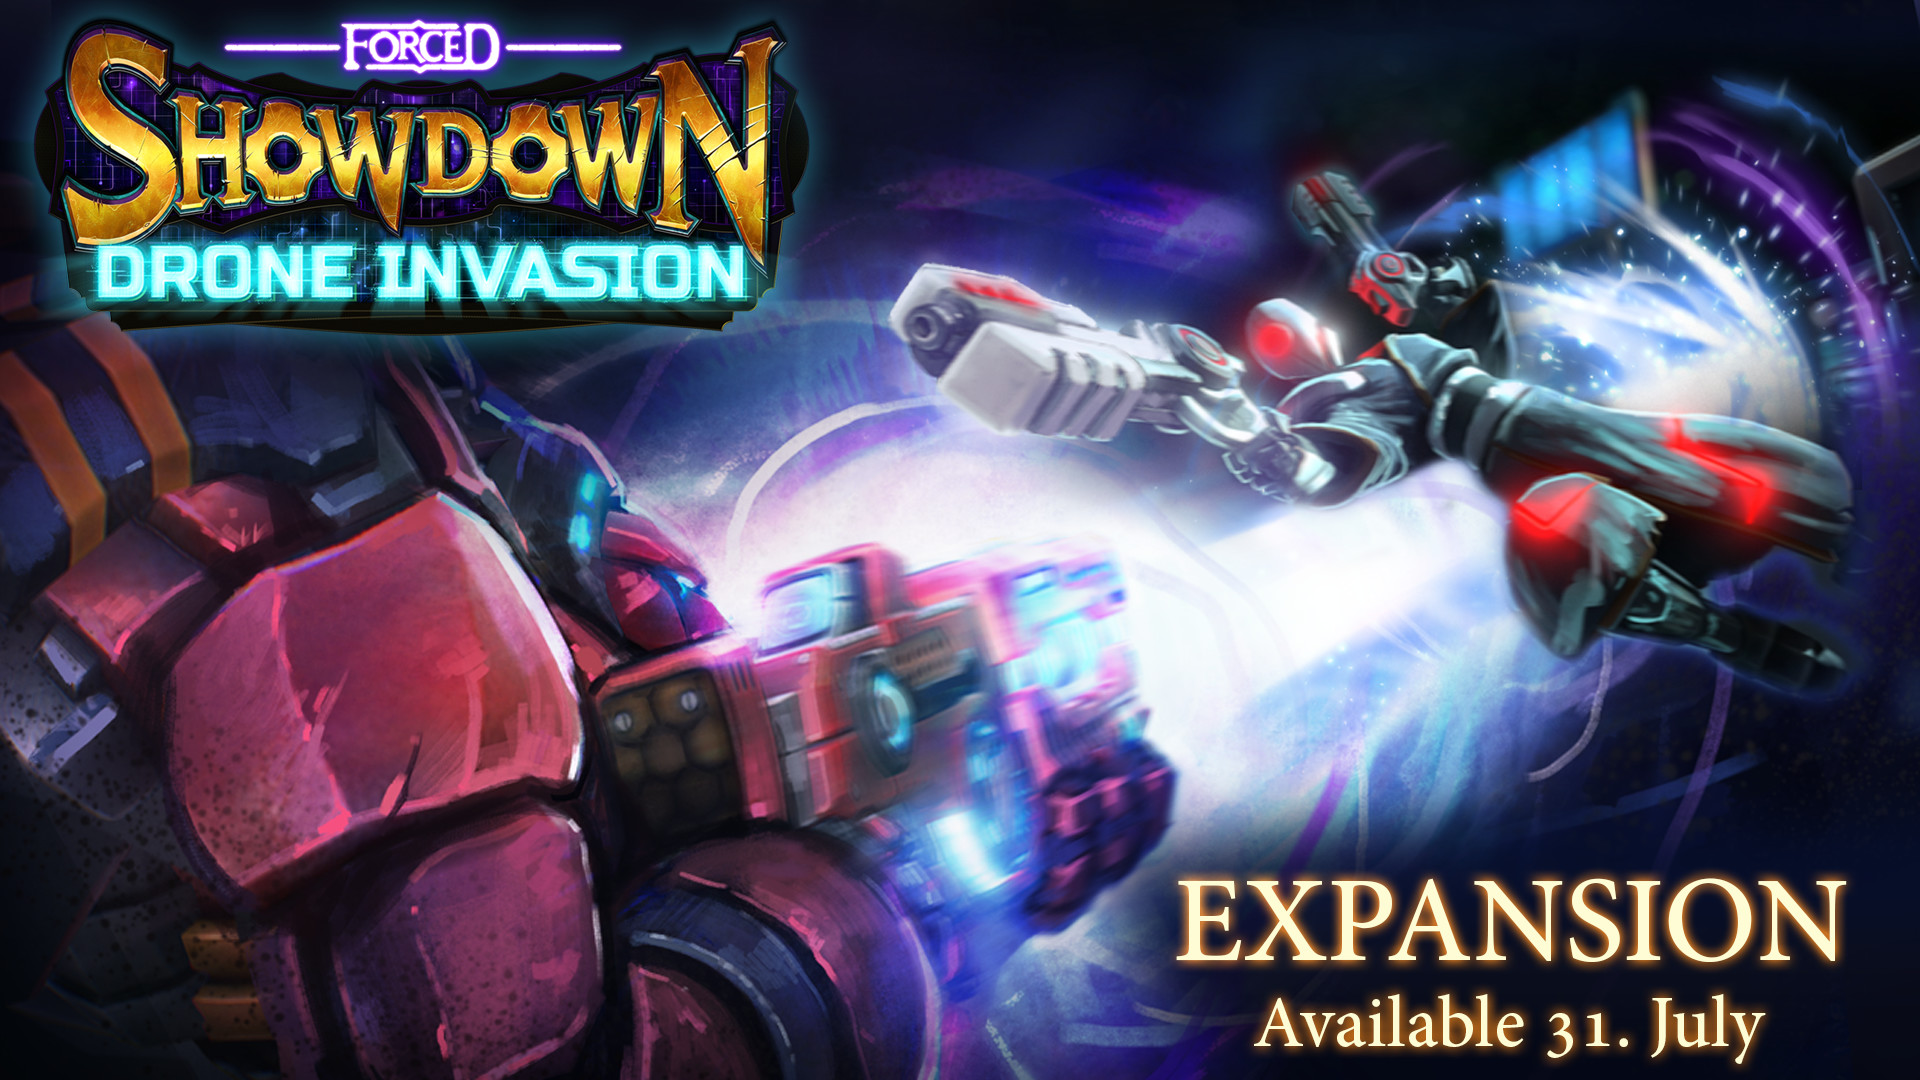 Forced Showdown Gameplay download forced showdown full pc game